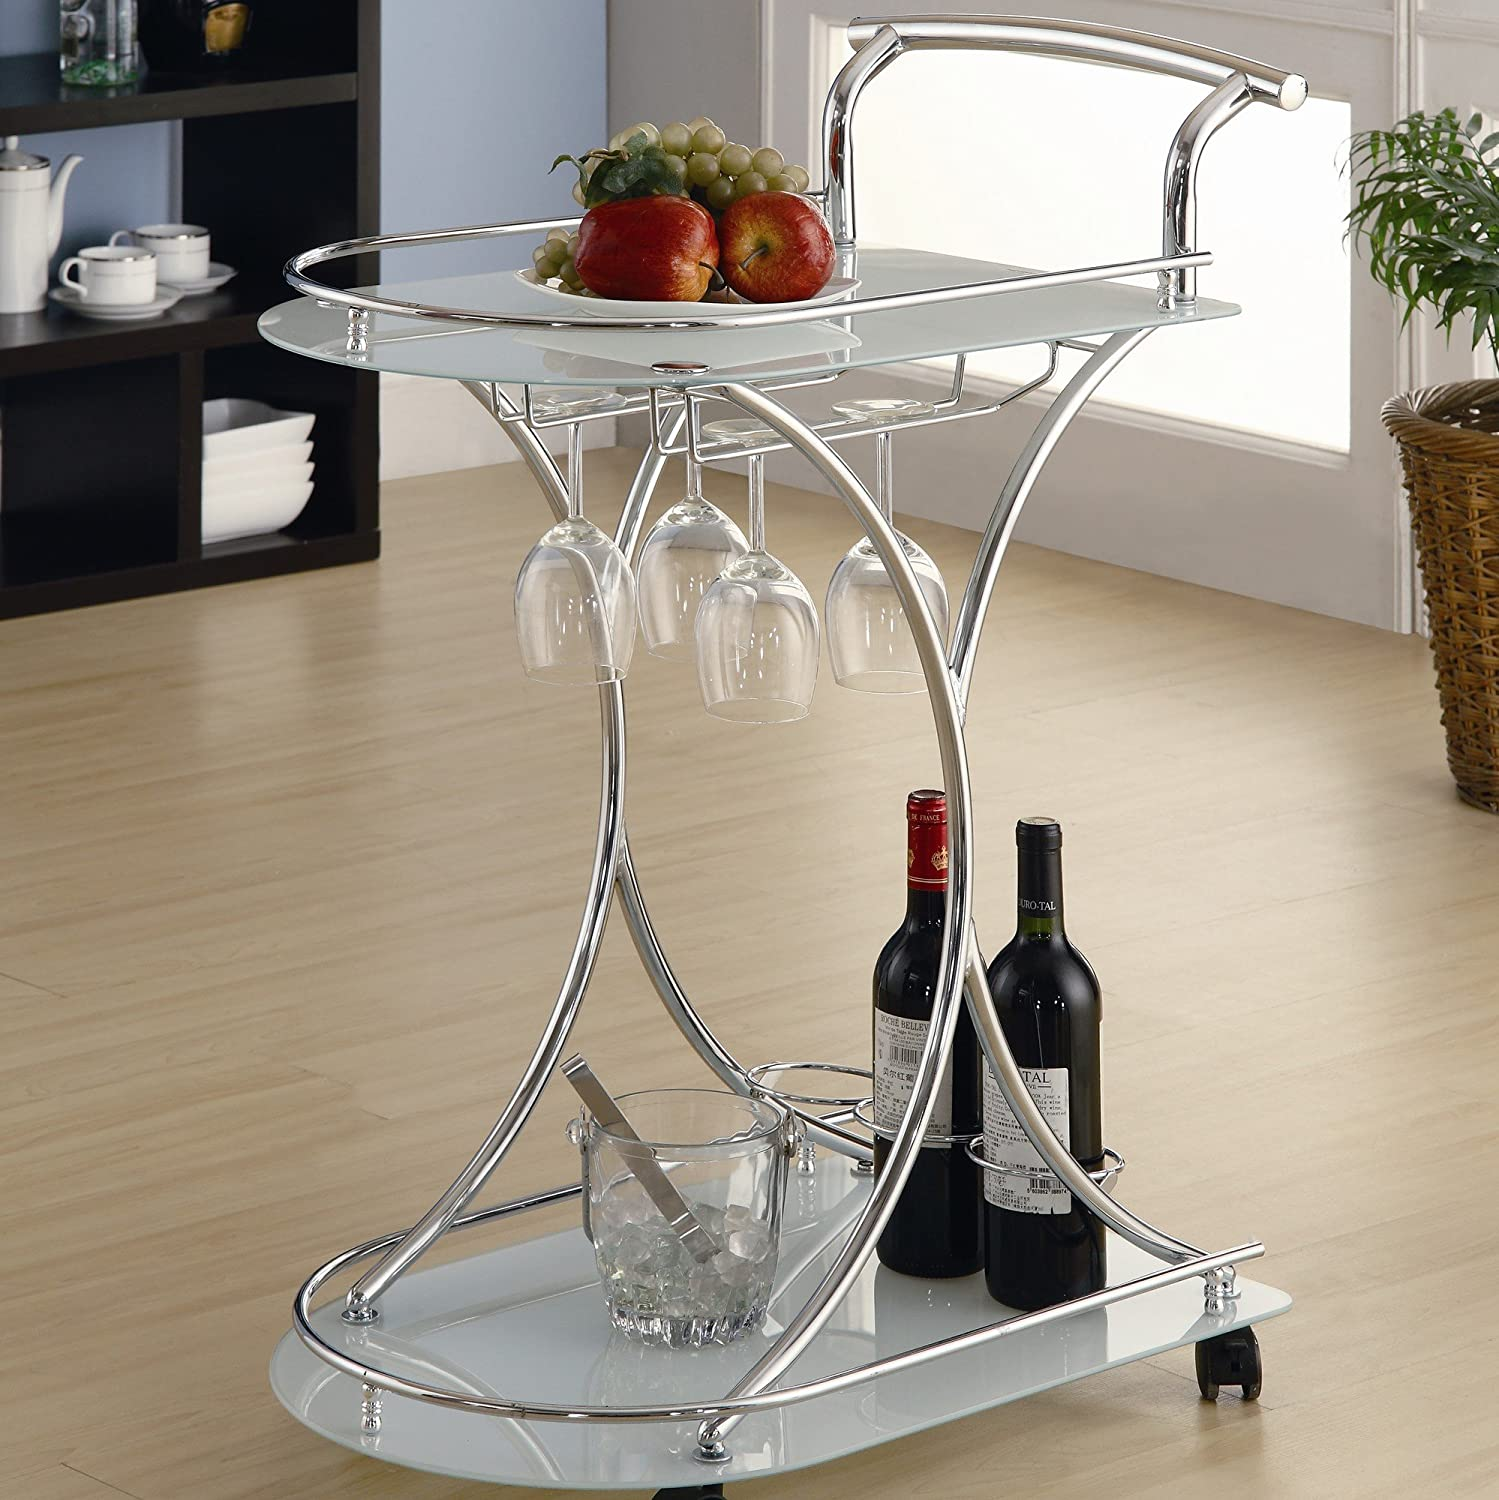 ... Home Whisper Serving Cart Trolley Tea Bar Contemporary Style Two  Frosted Glass Shelves Drink Liquor Rolling Rack Beverage Wine Tray: Kitchen  U0026 Dining